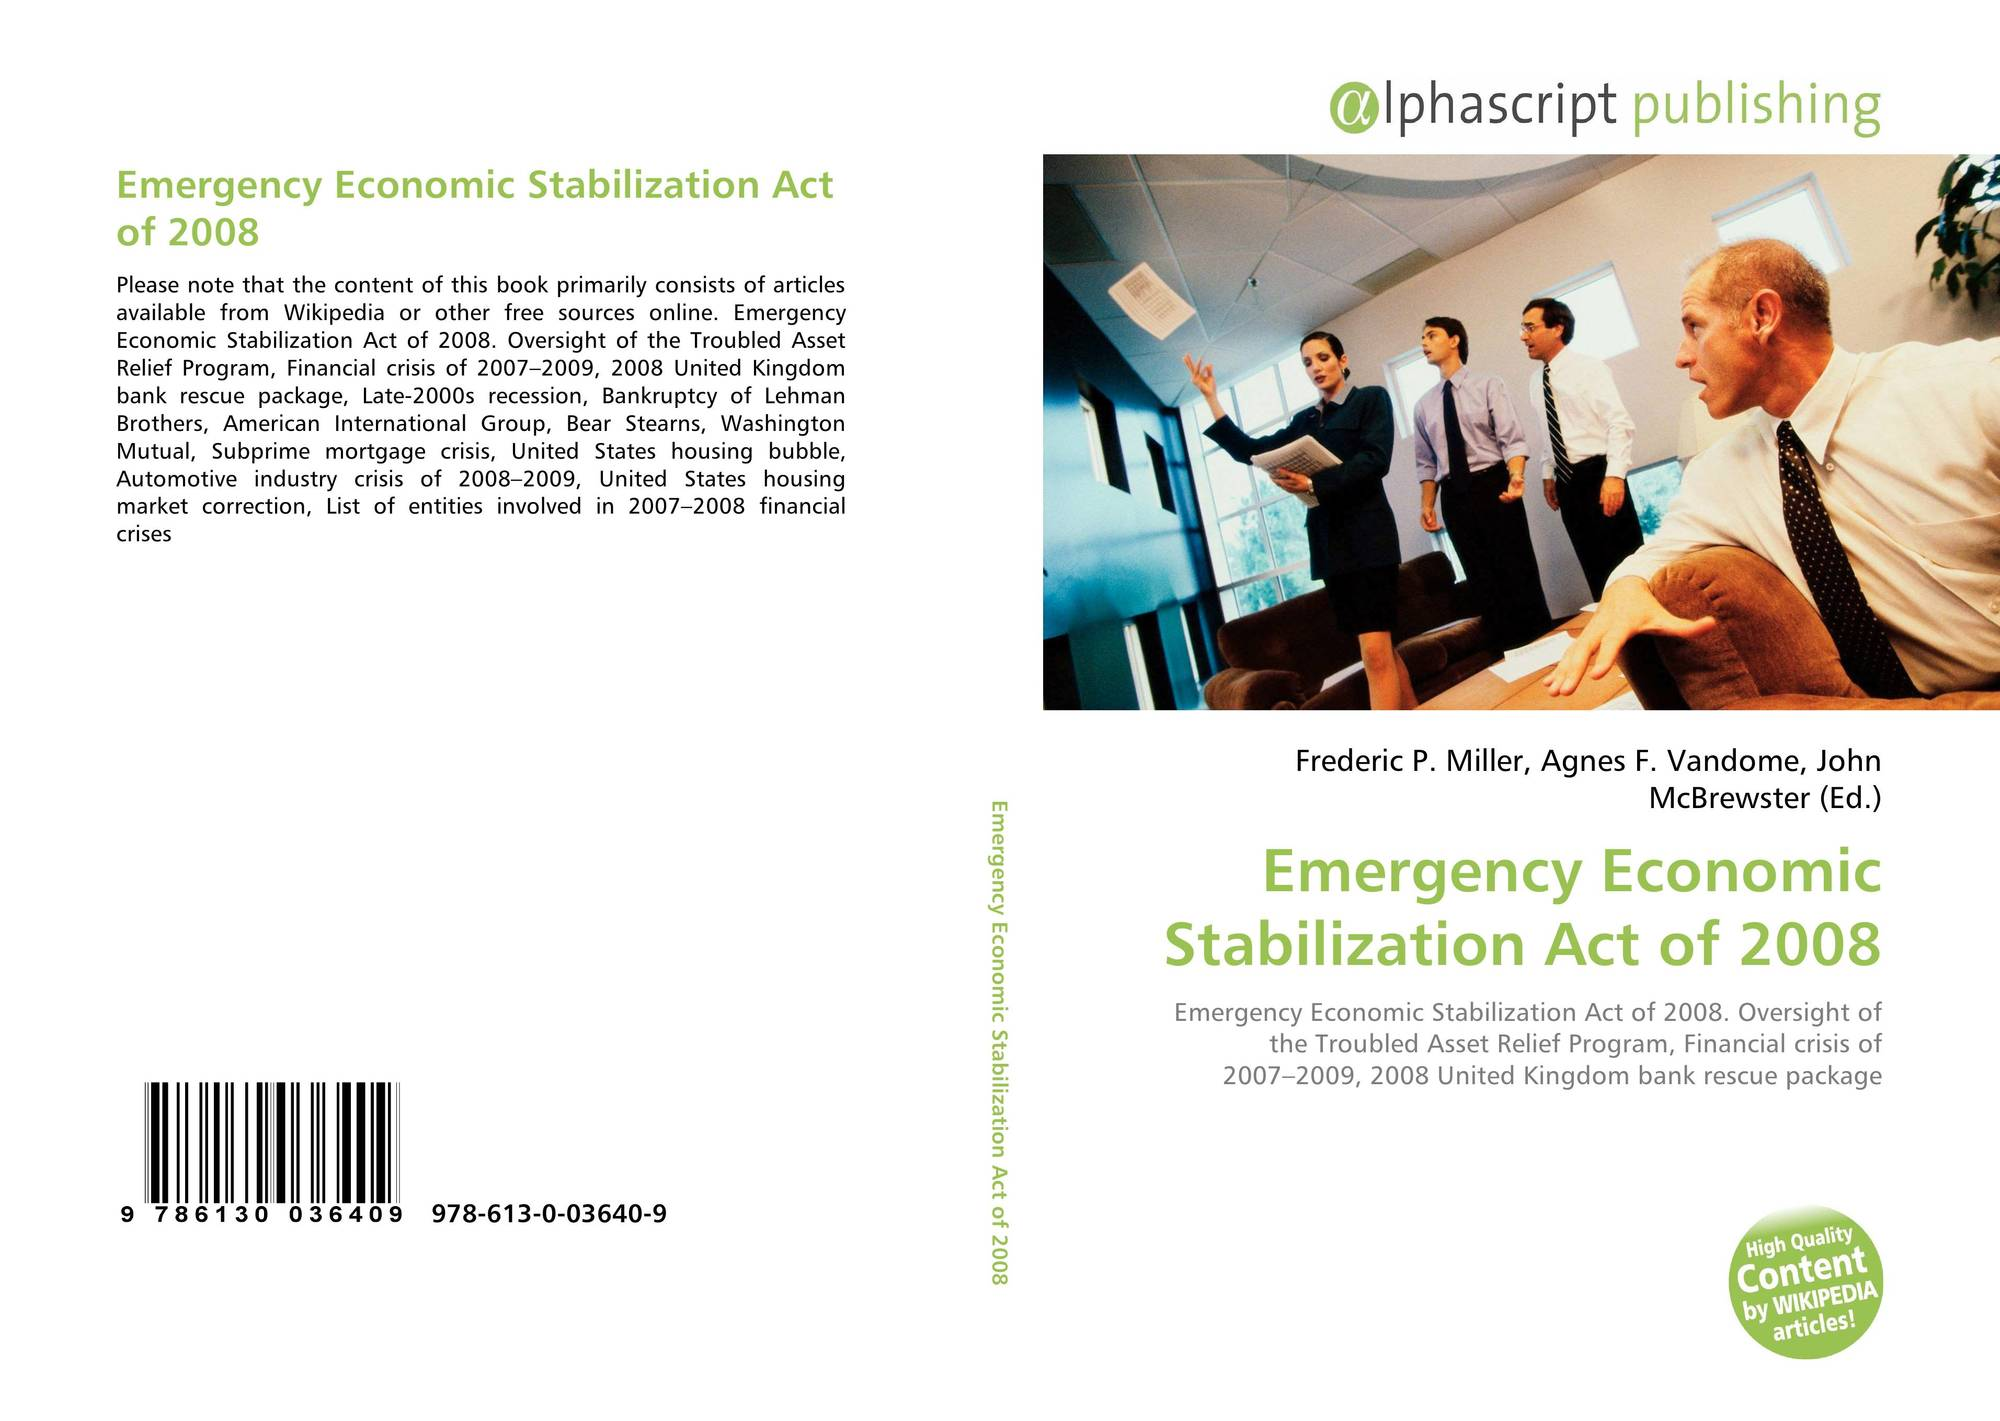 emergency economic stabilization act of 2008 Emergency economic stabilization act of 2008's wiki: the emergency economic stabilization act of 2008 (division a of , 122 stat , enacted october 3, 2008), commonly referred to as a bailout of the us financial system, is a law enacted subsequently to the subprime mortgage crisis authorizing the united st.